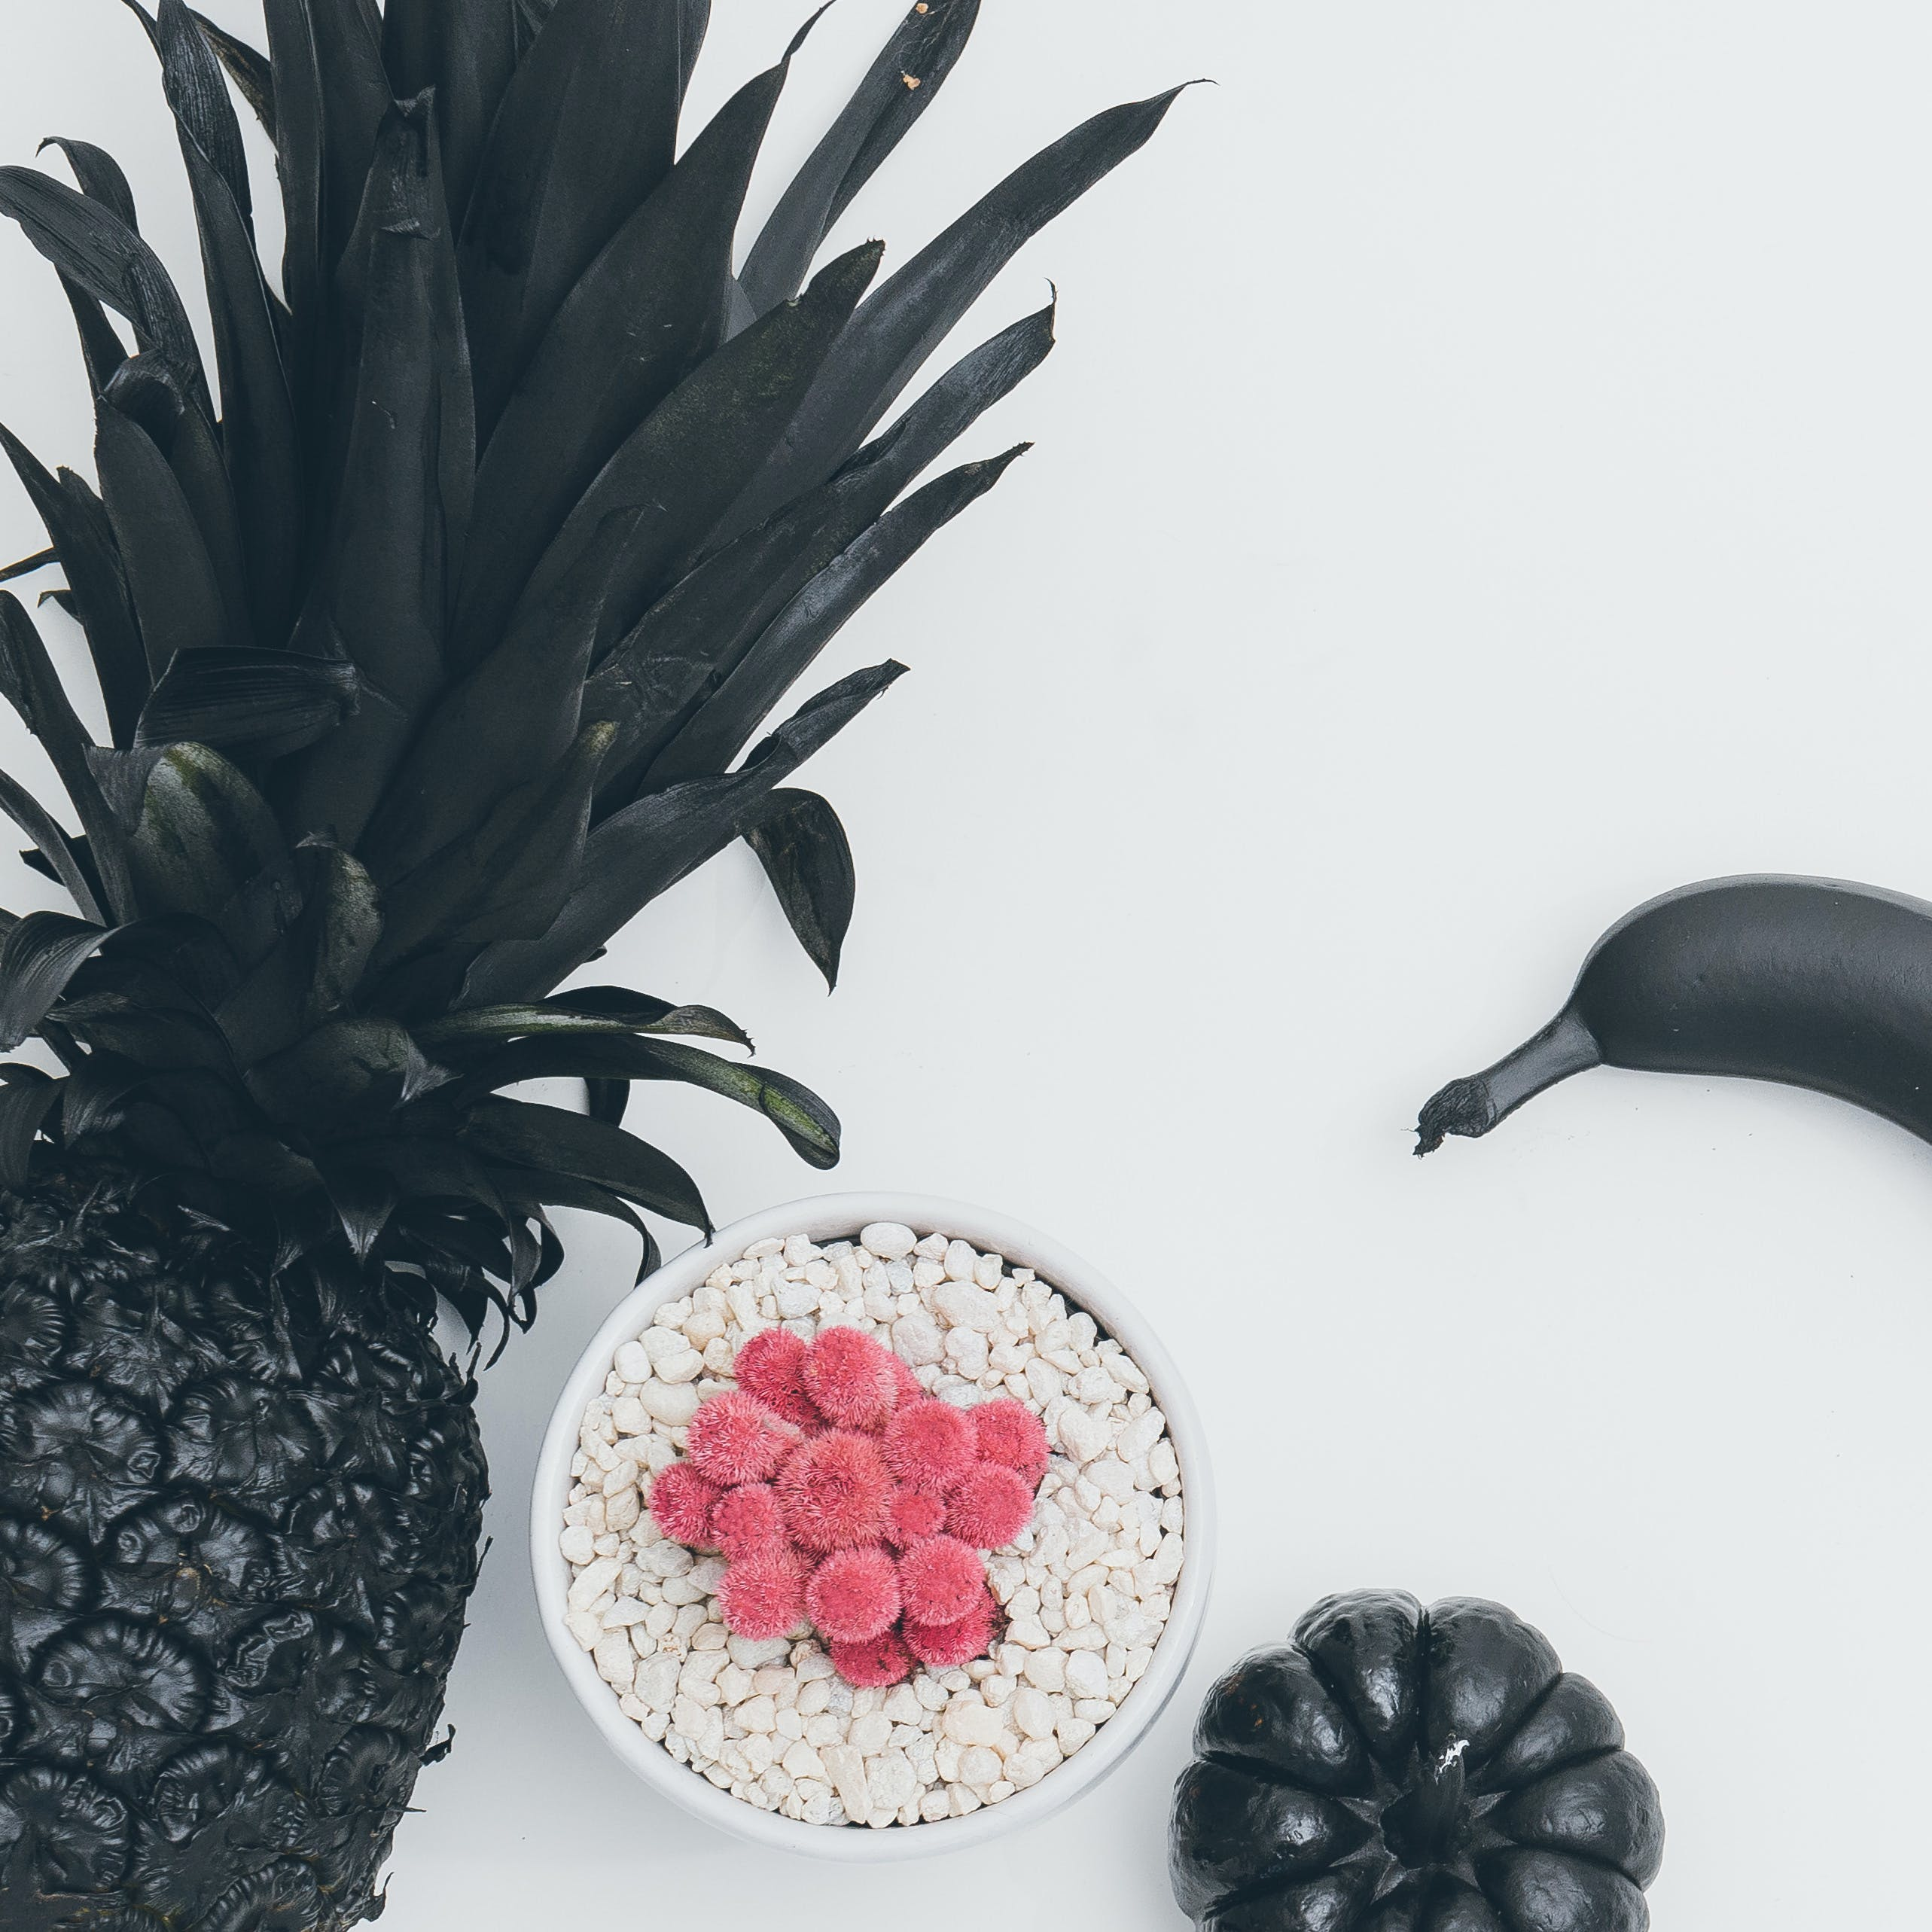 Free stock photo of art, banana, black, cactus